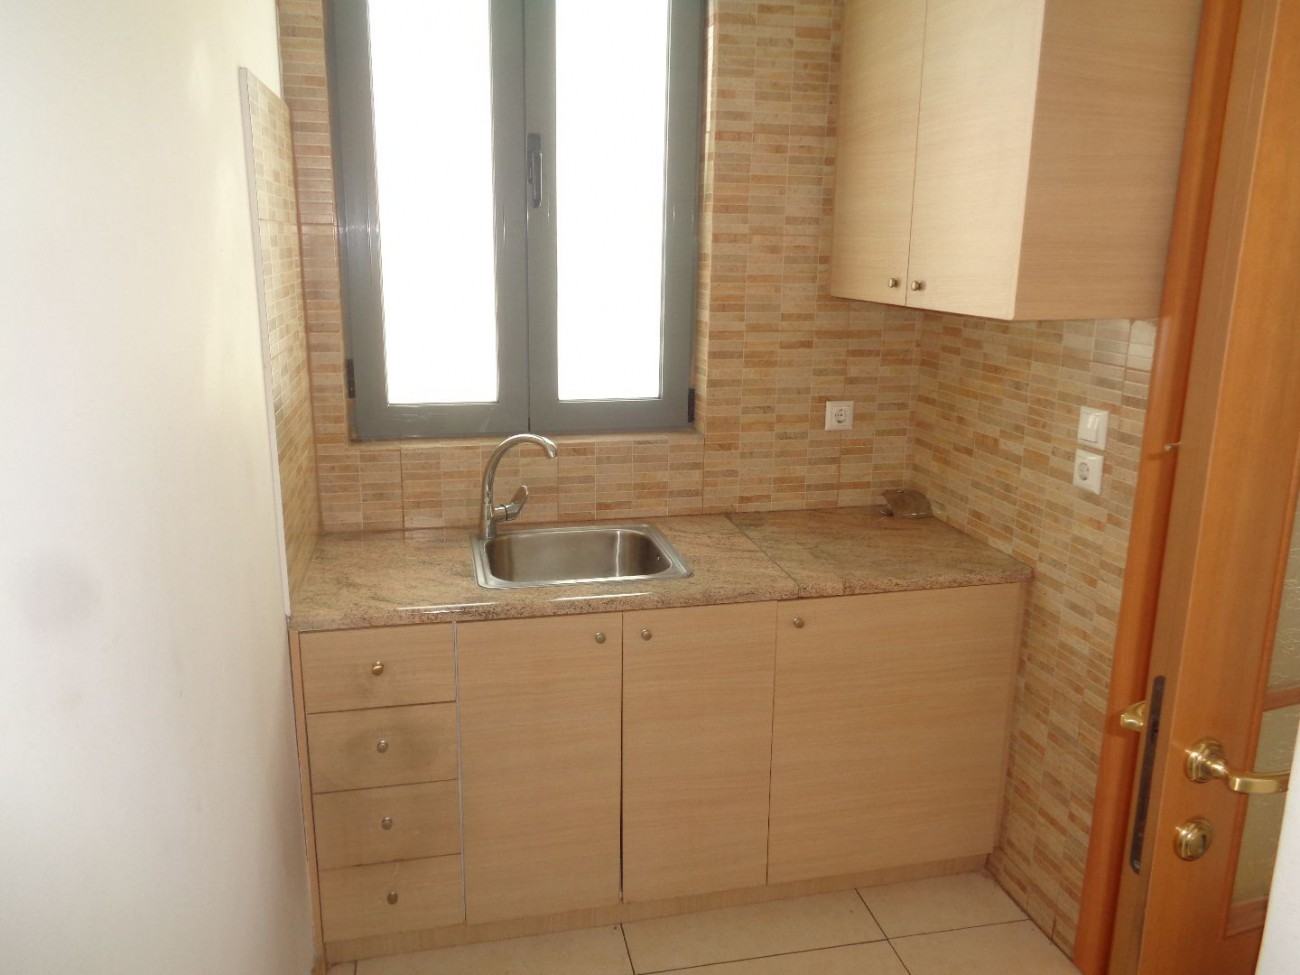 Building for Rent in Ellinorwswn, Athens City Center, Greece